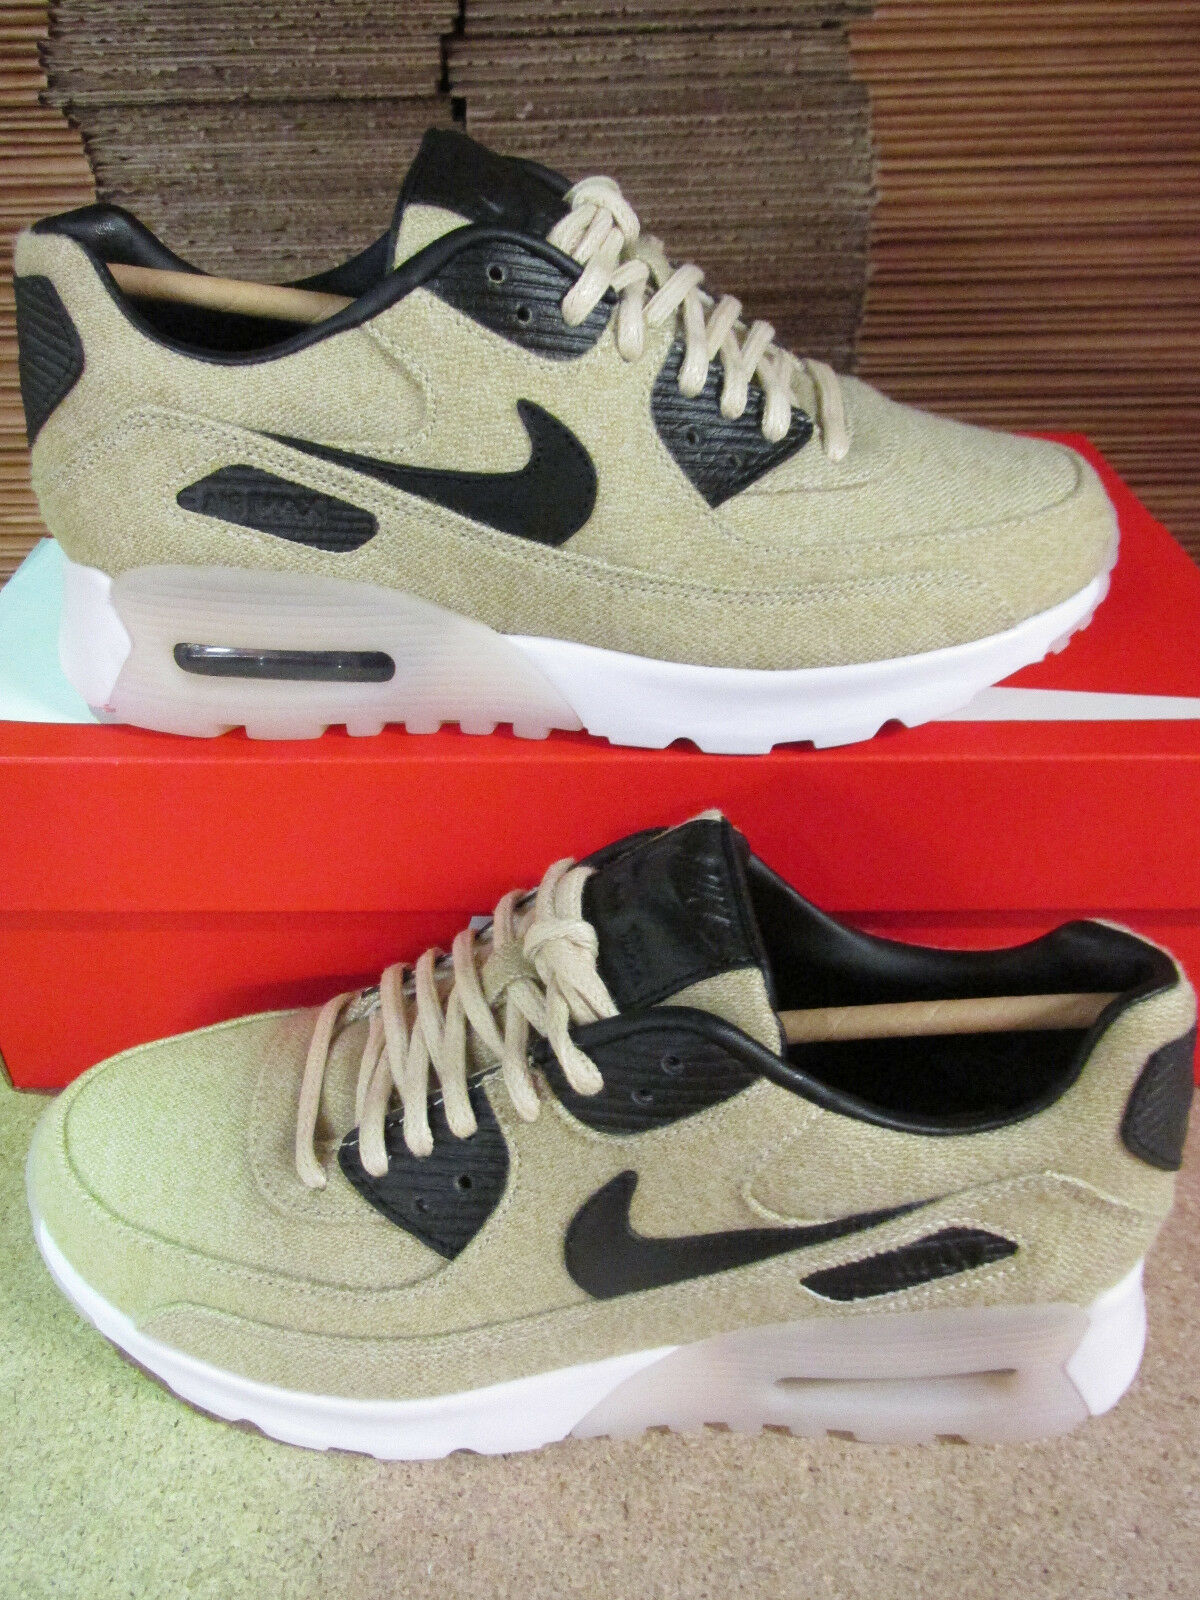 Nike Womens Air Max 90 Ultra PRM Running Trainers 859522 100 Sneakers Shoes